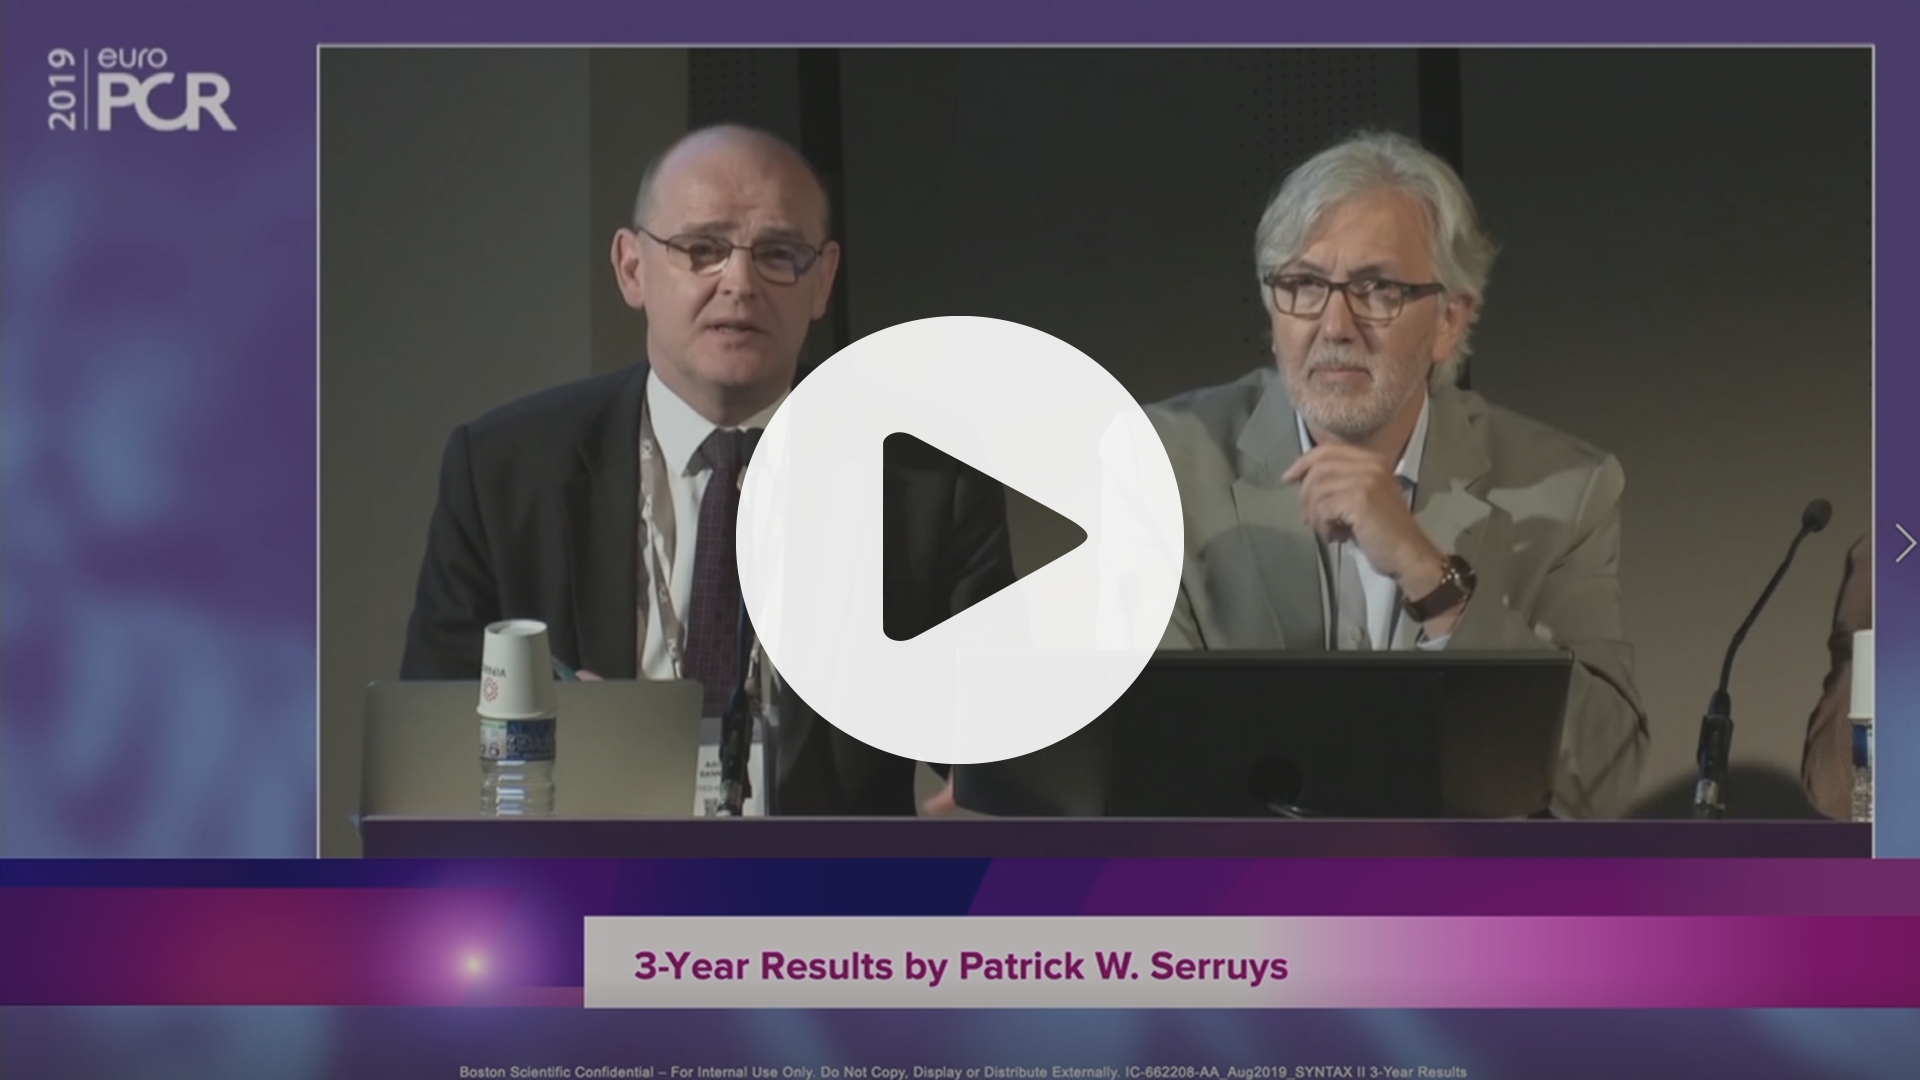 SYNTAX II 3-year Results by Patrick W Serruys, VIdeo